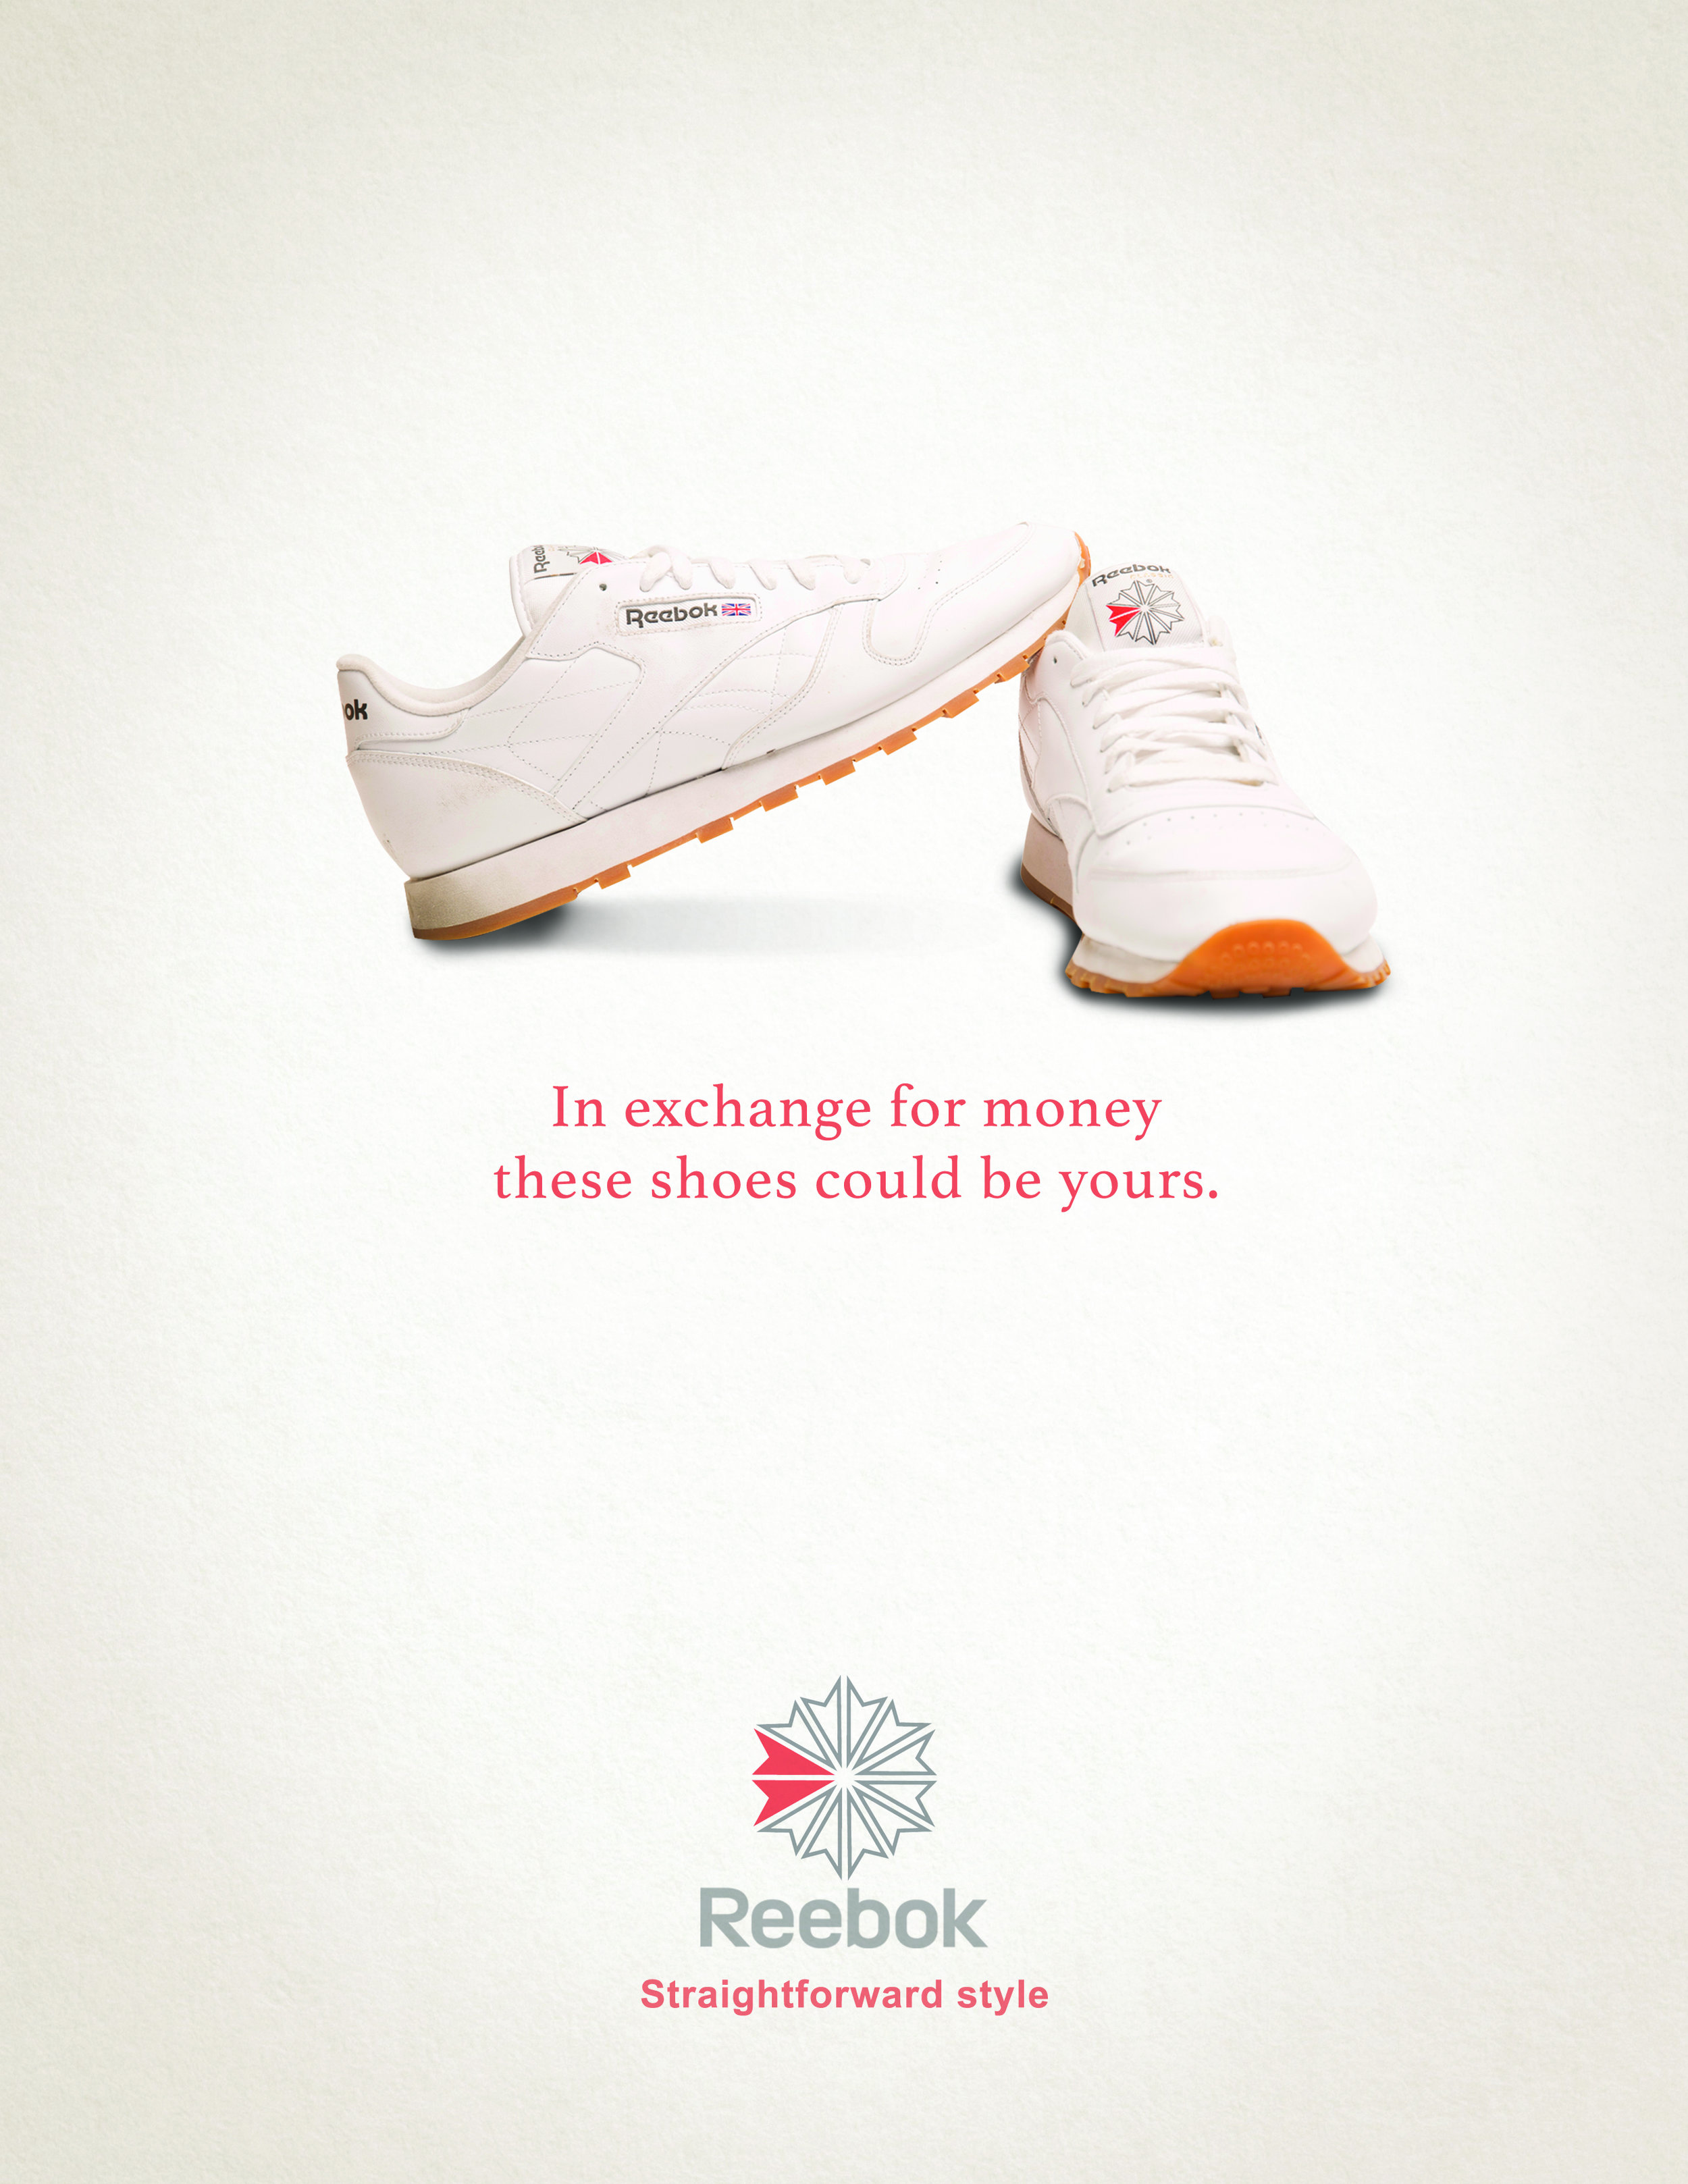 Reebok_Exchange for Money.jpg